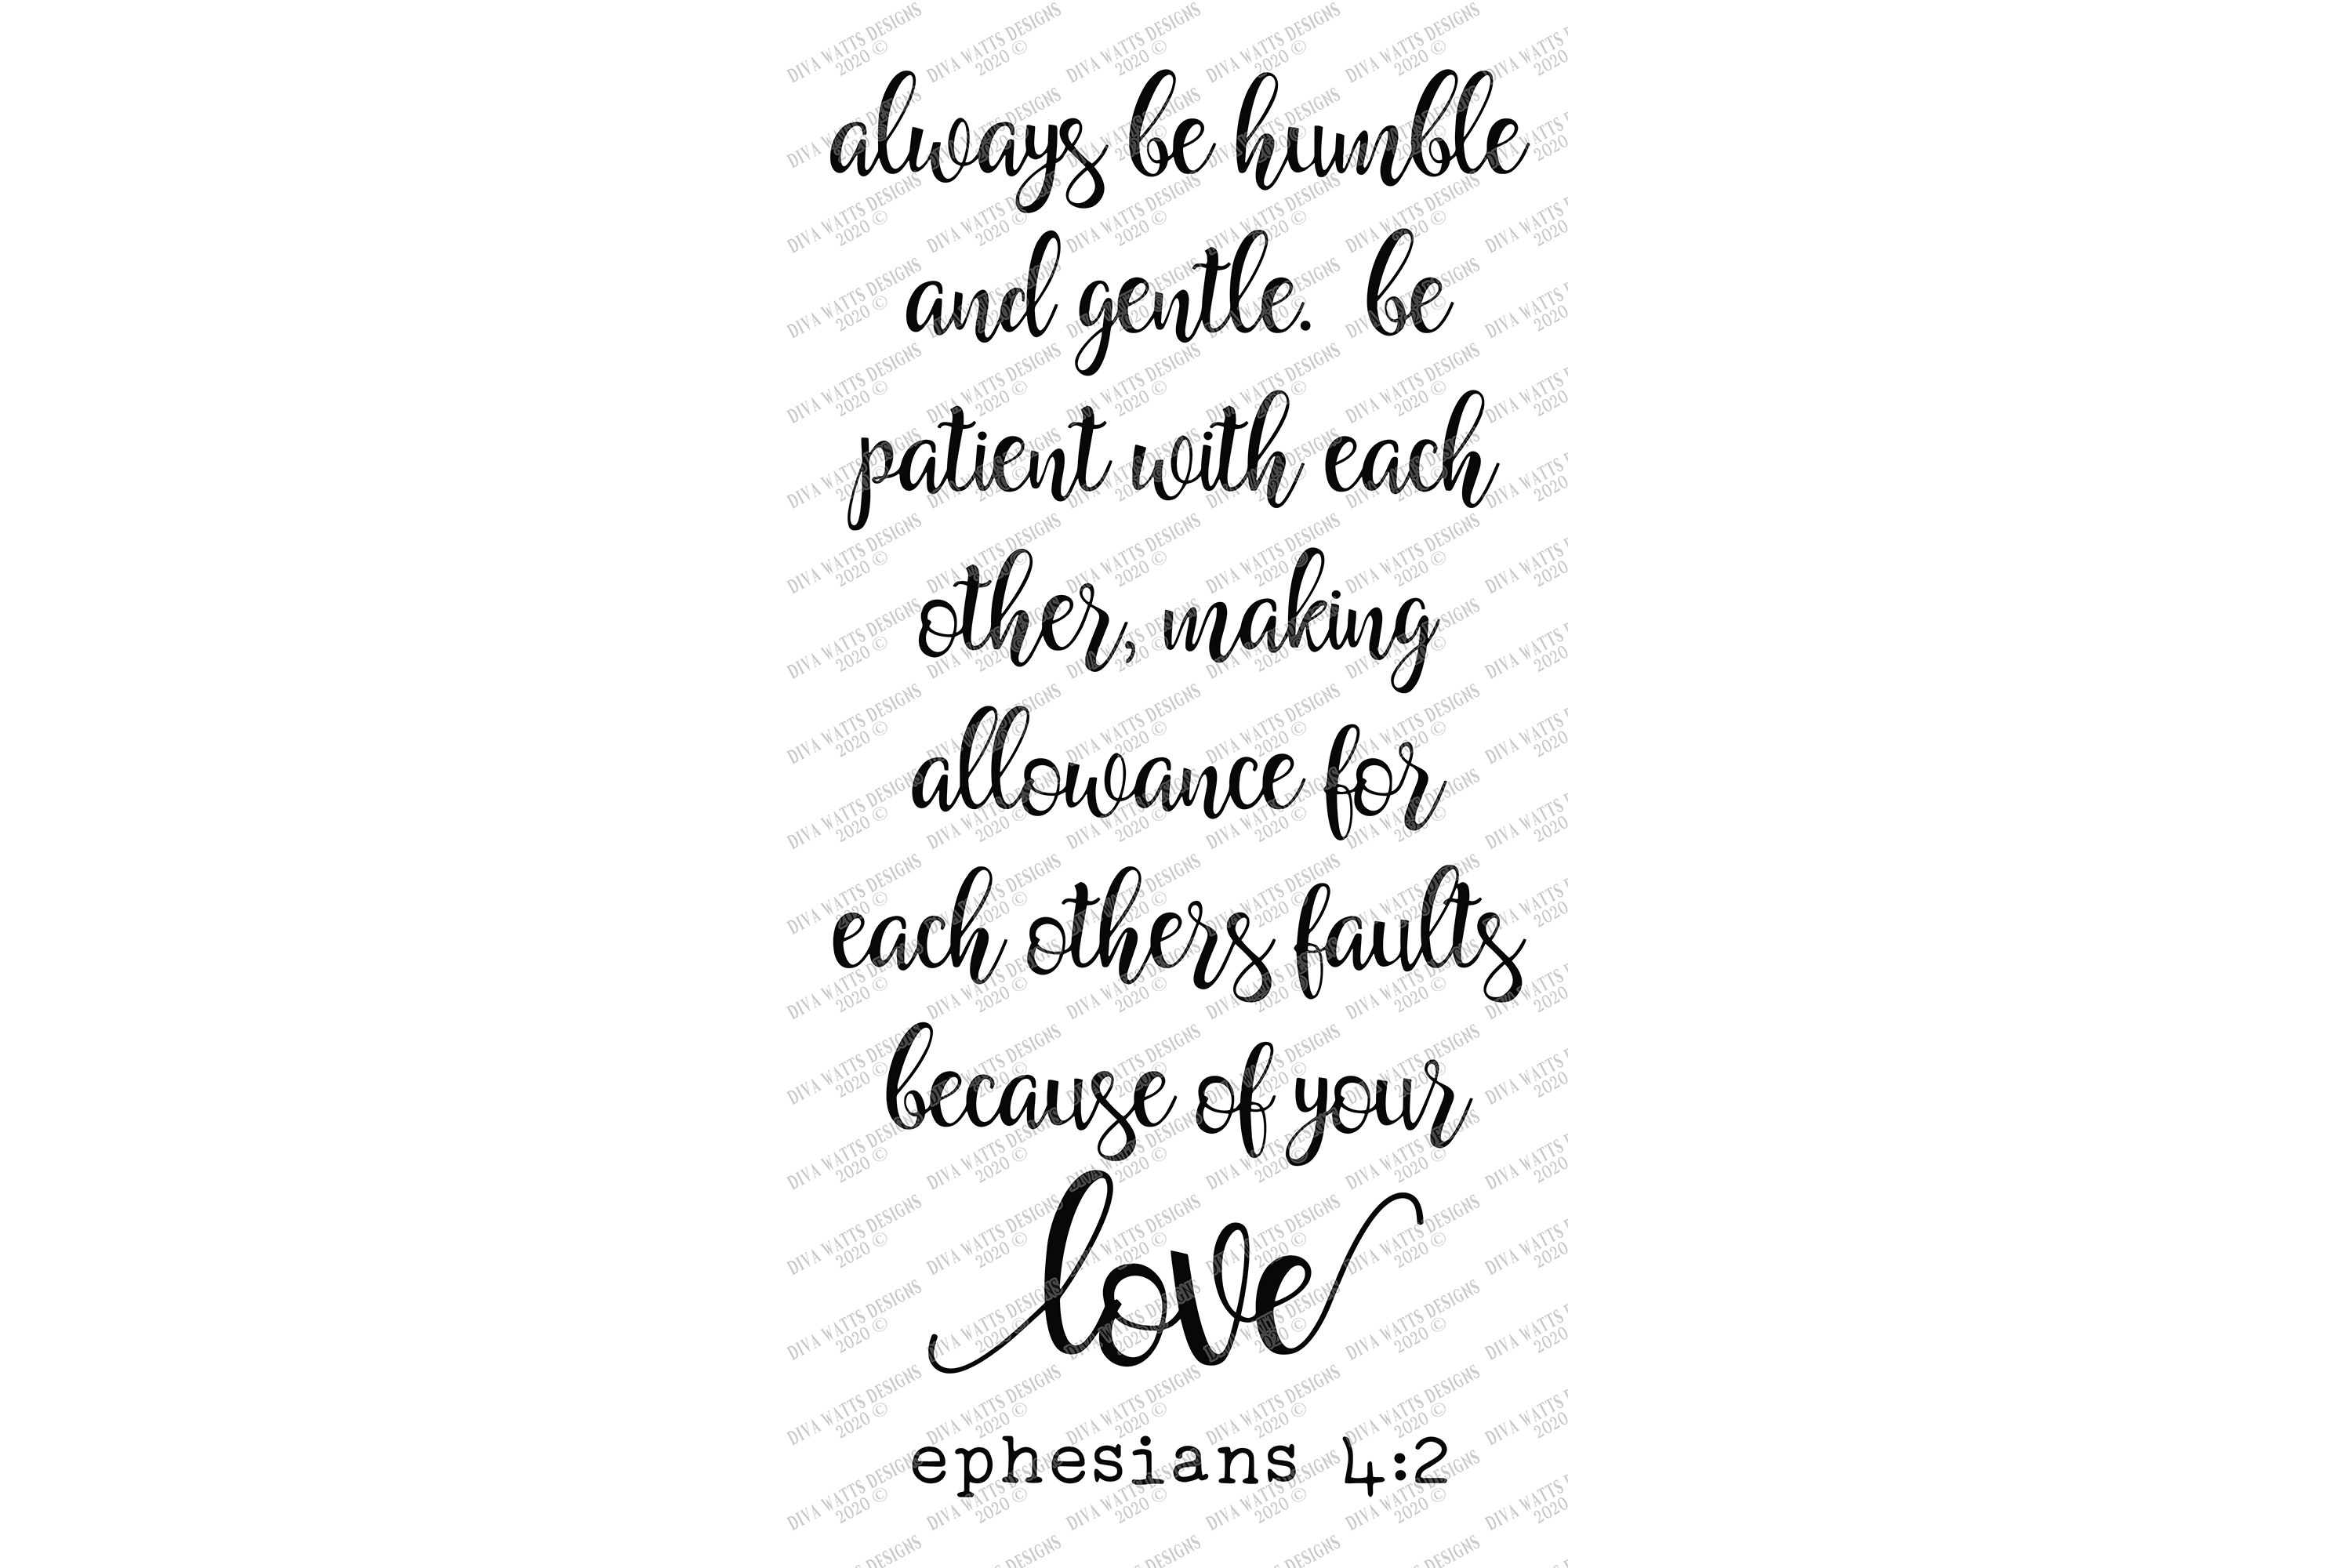 Always Be Humble & Gentle Be Patient Because of Your Love example image 2